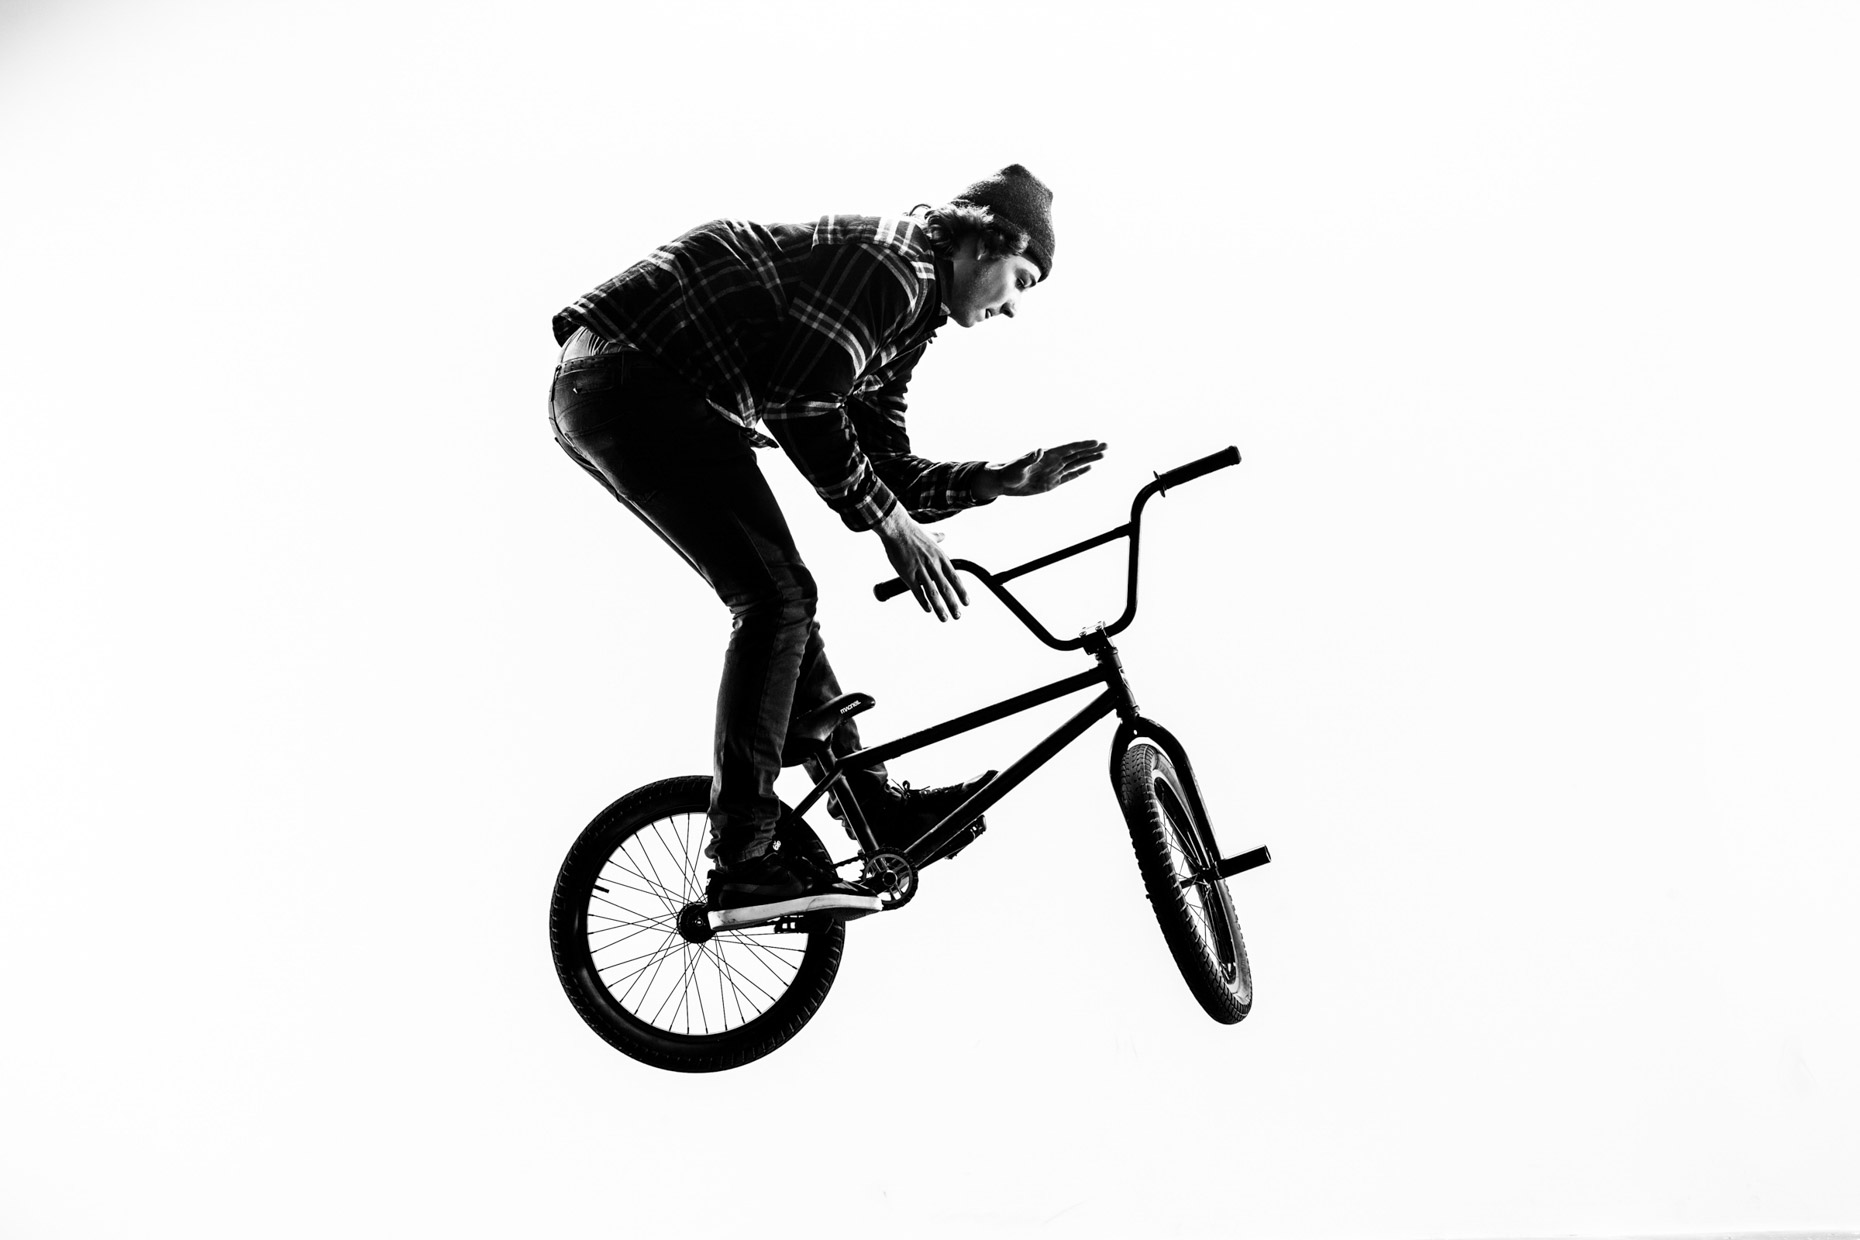 BMX flatlander Codie Larsen in action